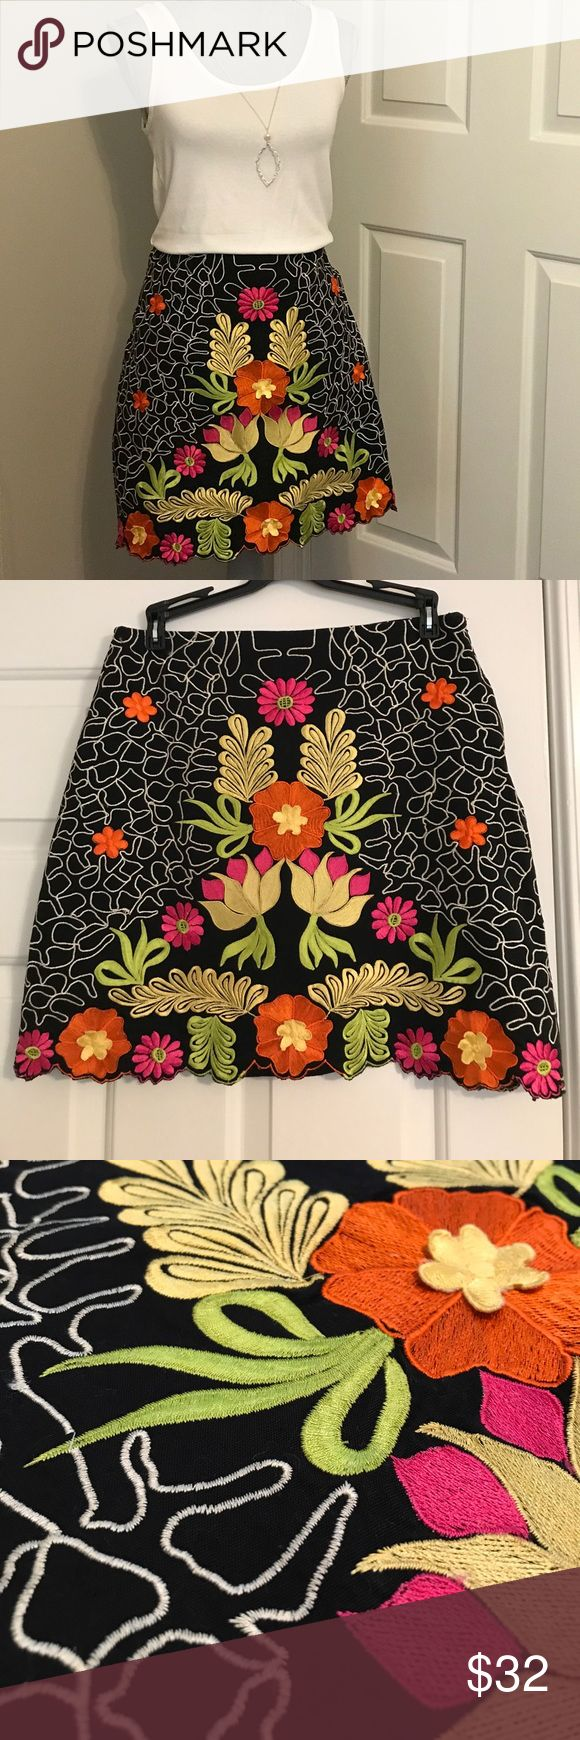 "P.S.N.Y Saman Petite Skirt What a work of art!  This beautiful P.S.N.Y embroidered skirt in size 2 Petite is fully lined and has a side hidden zipper. The waist measures approximately 15"" side to side and 17.5"" from waist to scalloped hemline. P.S.N.Y Samon Petite Skirts"